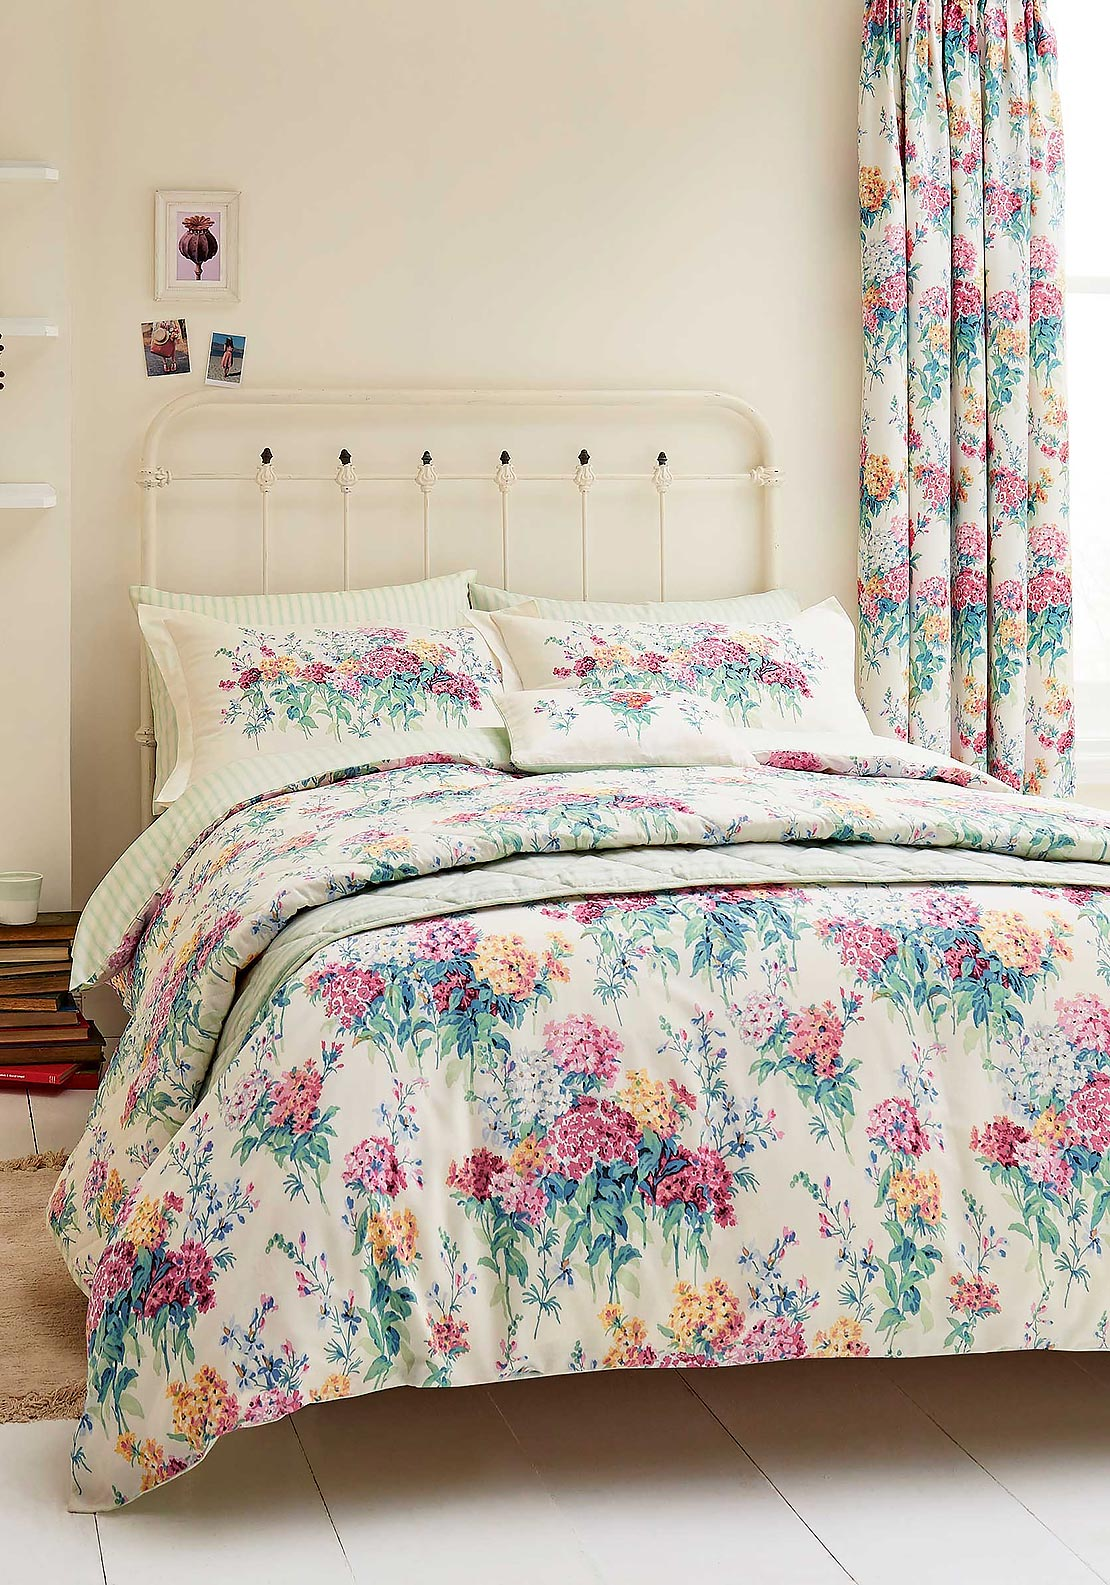 Sanderson Sweet Williams Floral Print Quilted Throw 265 x 260cm, Multi-Coloured